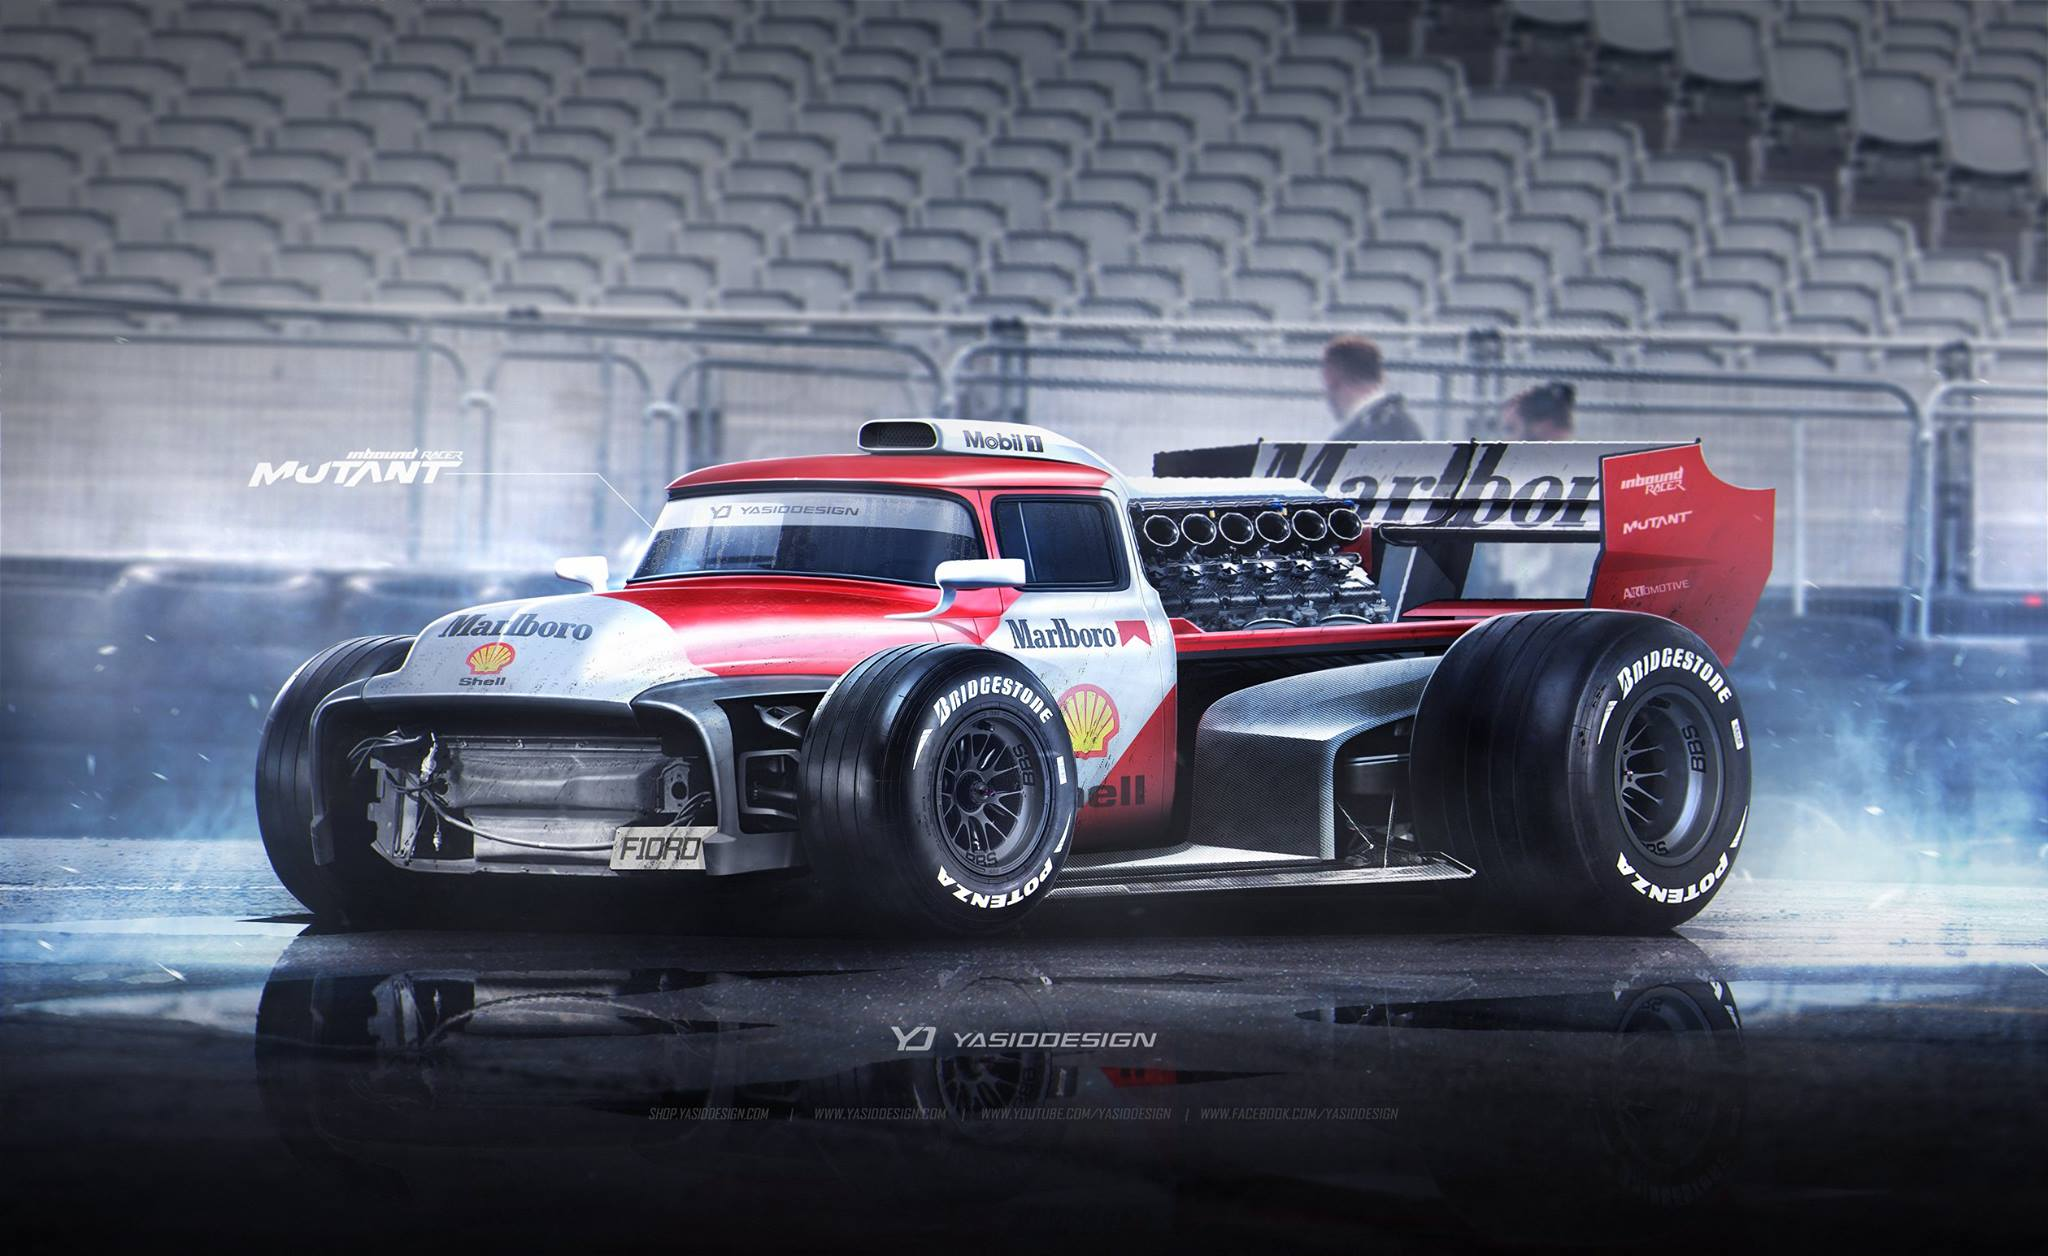 Ford F-100 Meets V12 F1 Car in Mindblowing Rendering ...